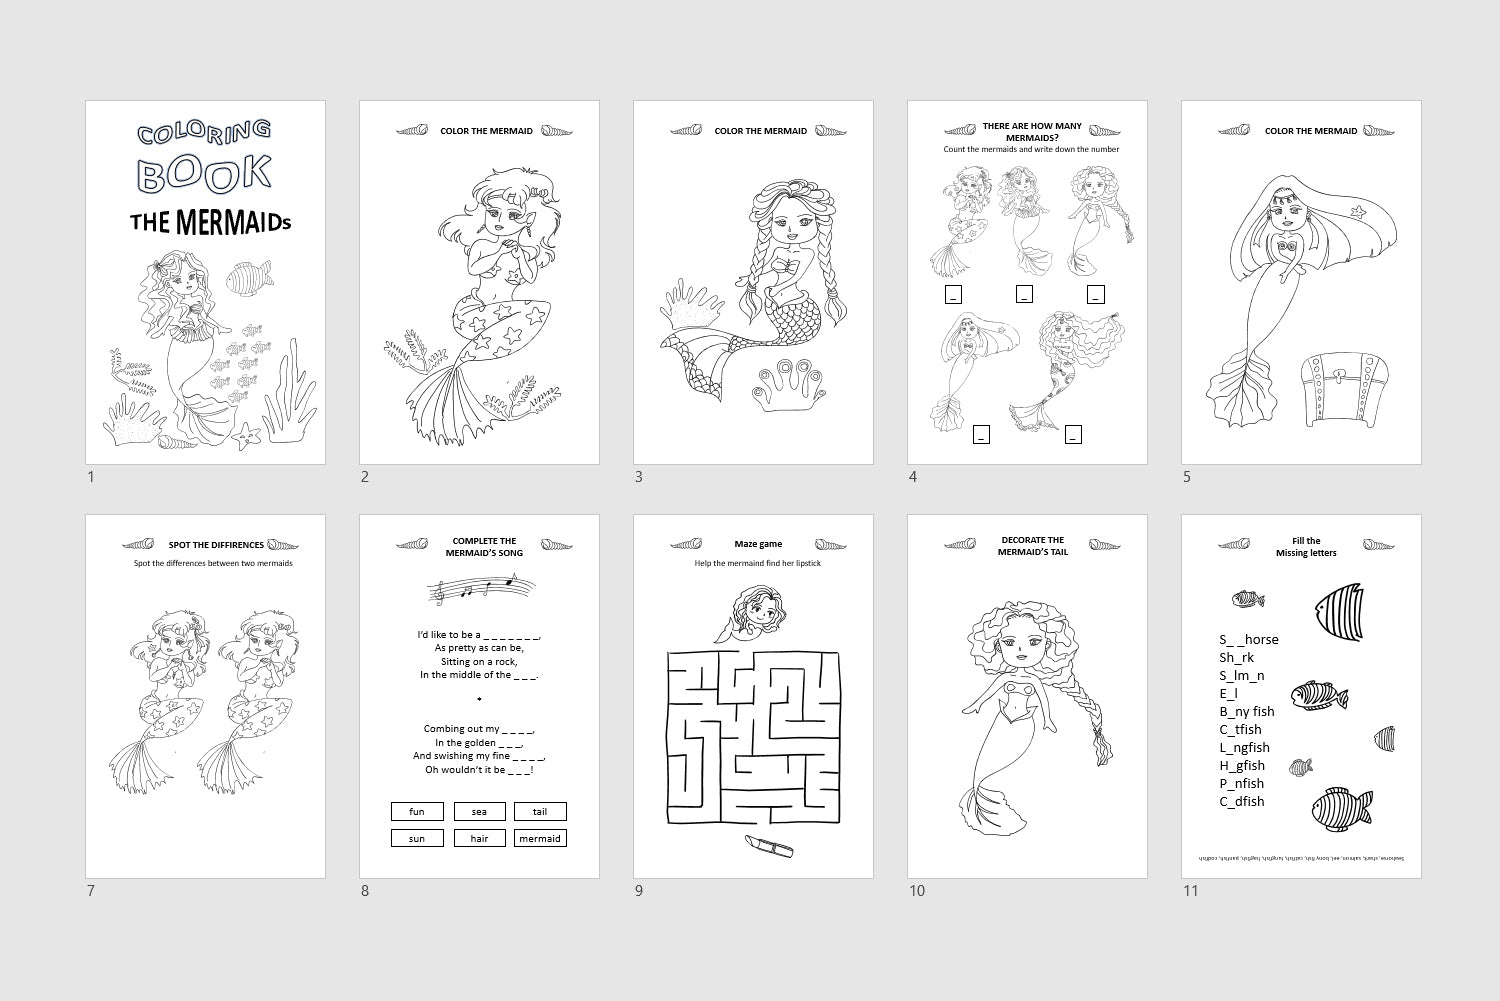 Little mermaid coloring activity book, Printable coloring pages, Little mermaid party favors